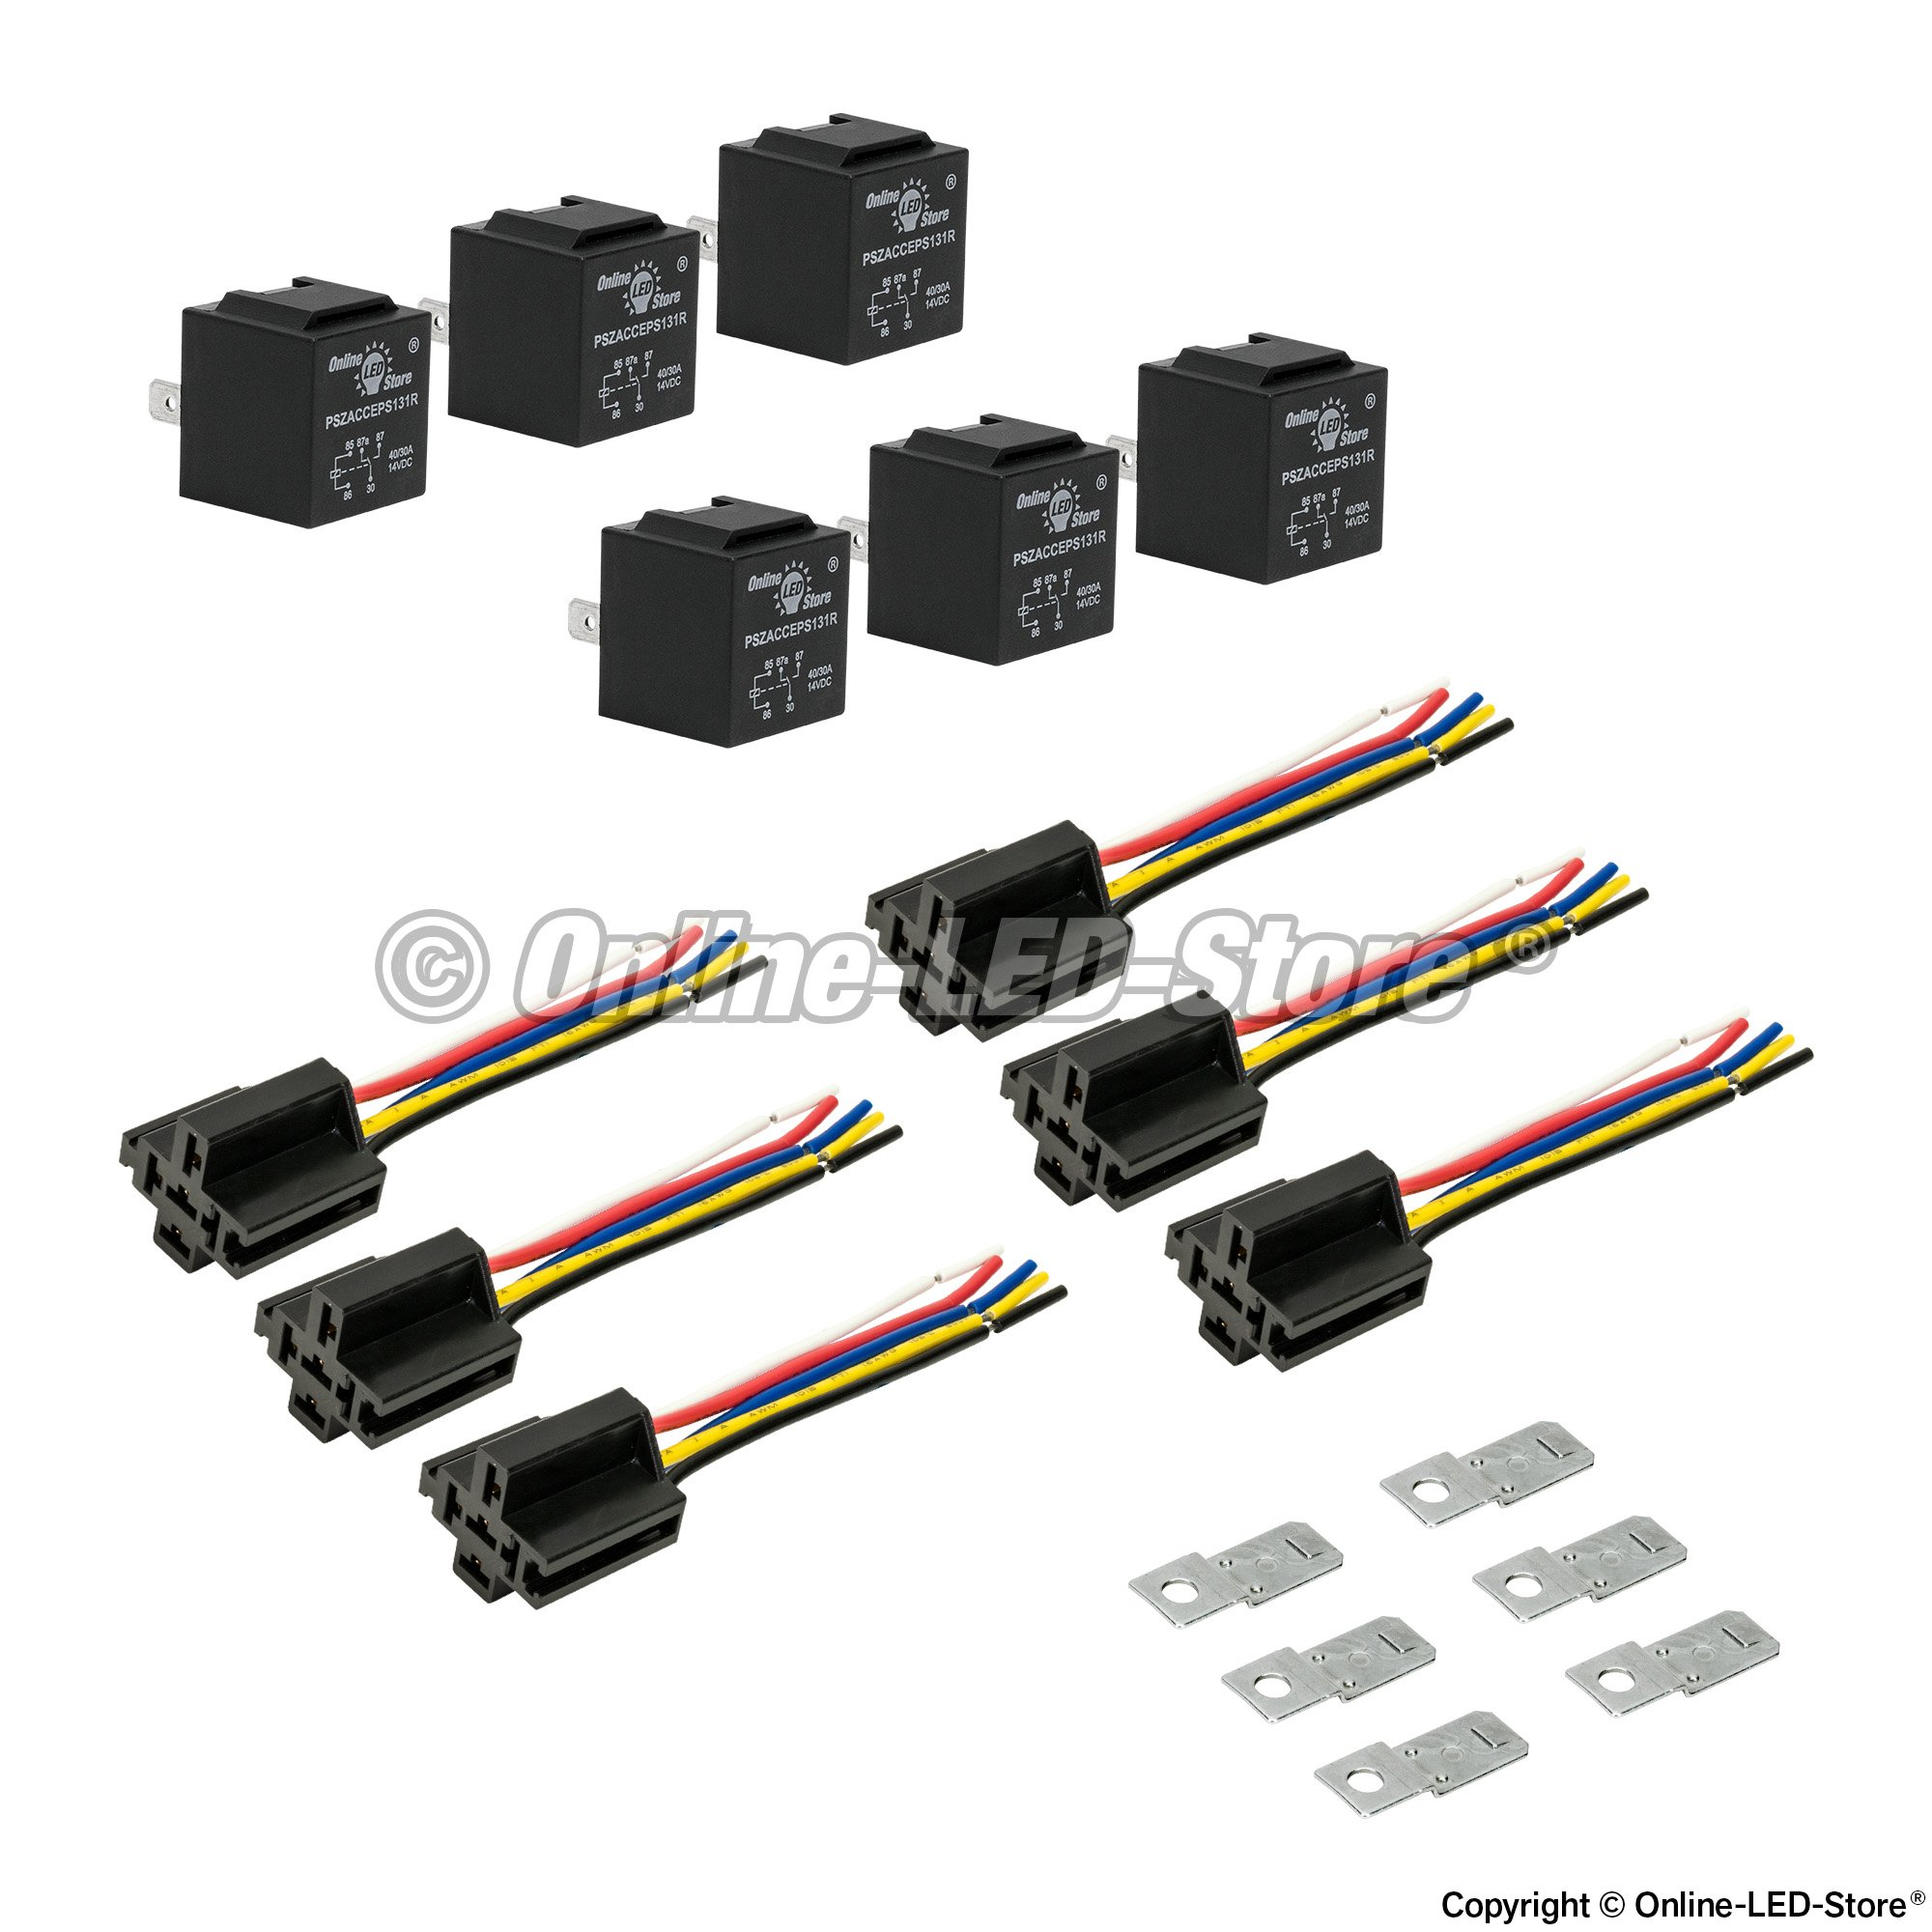 36v Club Car V Glide Wiring Diagram moreover 5jbwl Dodge Ram 1500 4x4 2008 Dodge Ram 1500 Single Cab also P 0900c15280268739 as well Discussion T46511 ds694061 as well Ols 12v 3040   5 Pin Spdt Bosch Style Electrical Relay Pszacceps131r Xx Pszacceps131r Xx. on electrical switches for cars